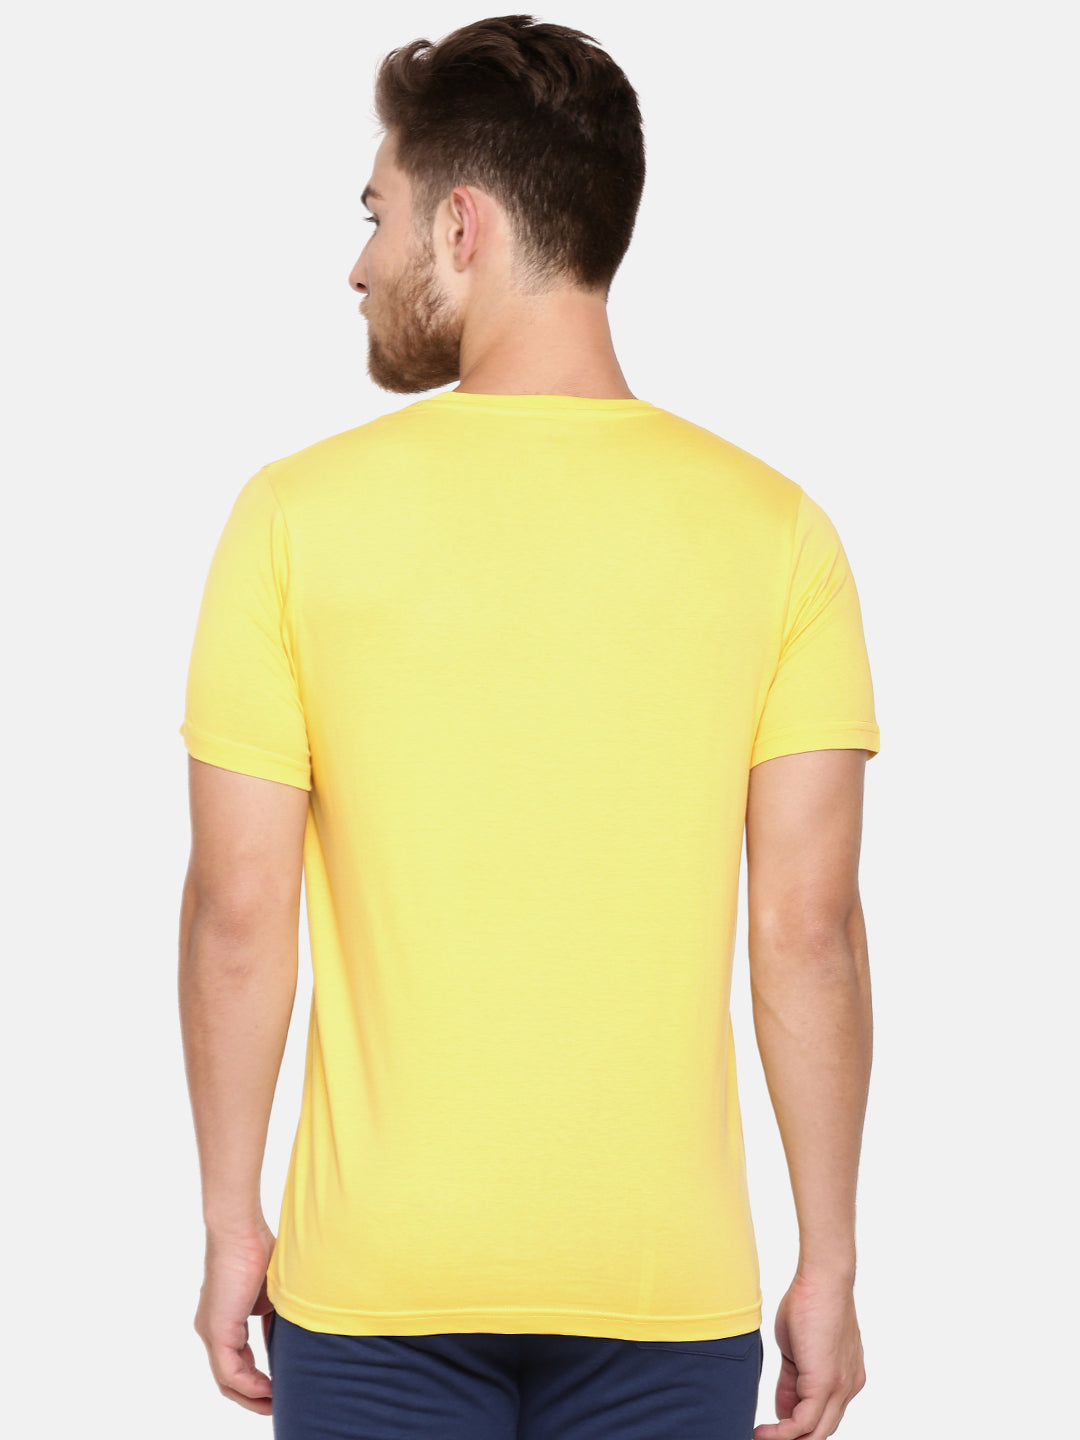 The Yellow Crew Tee